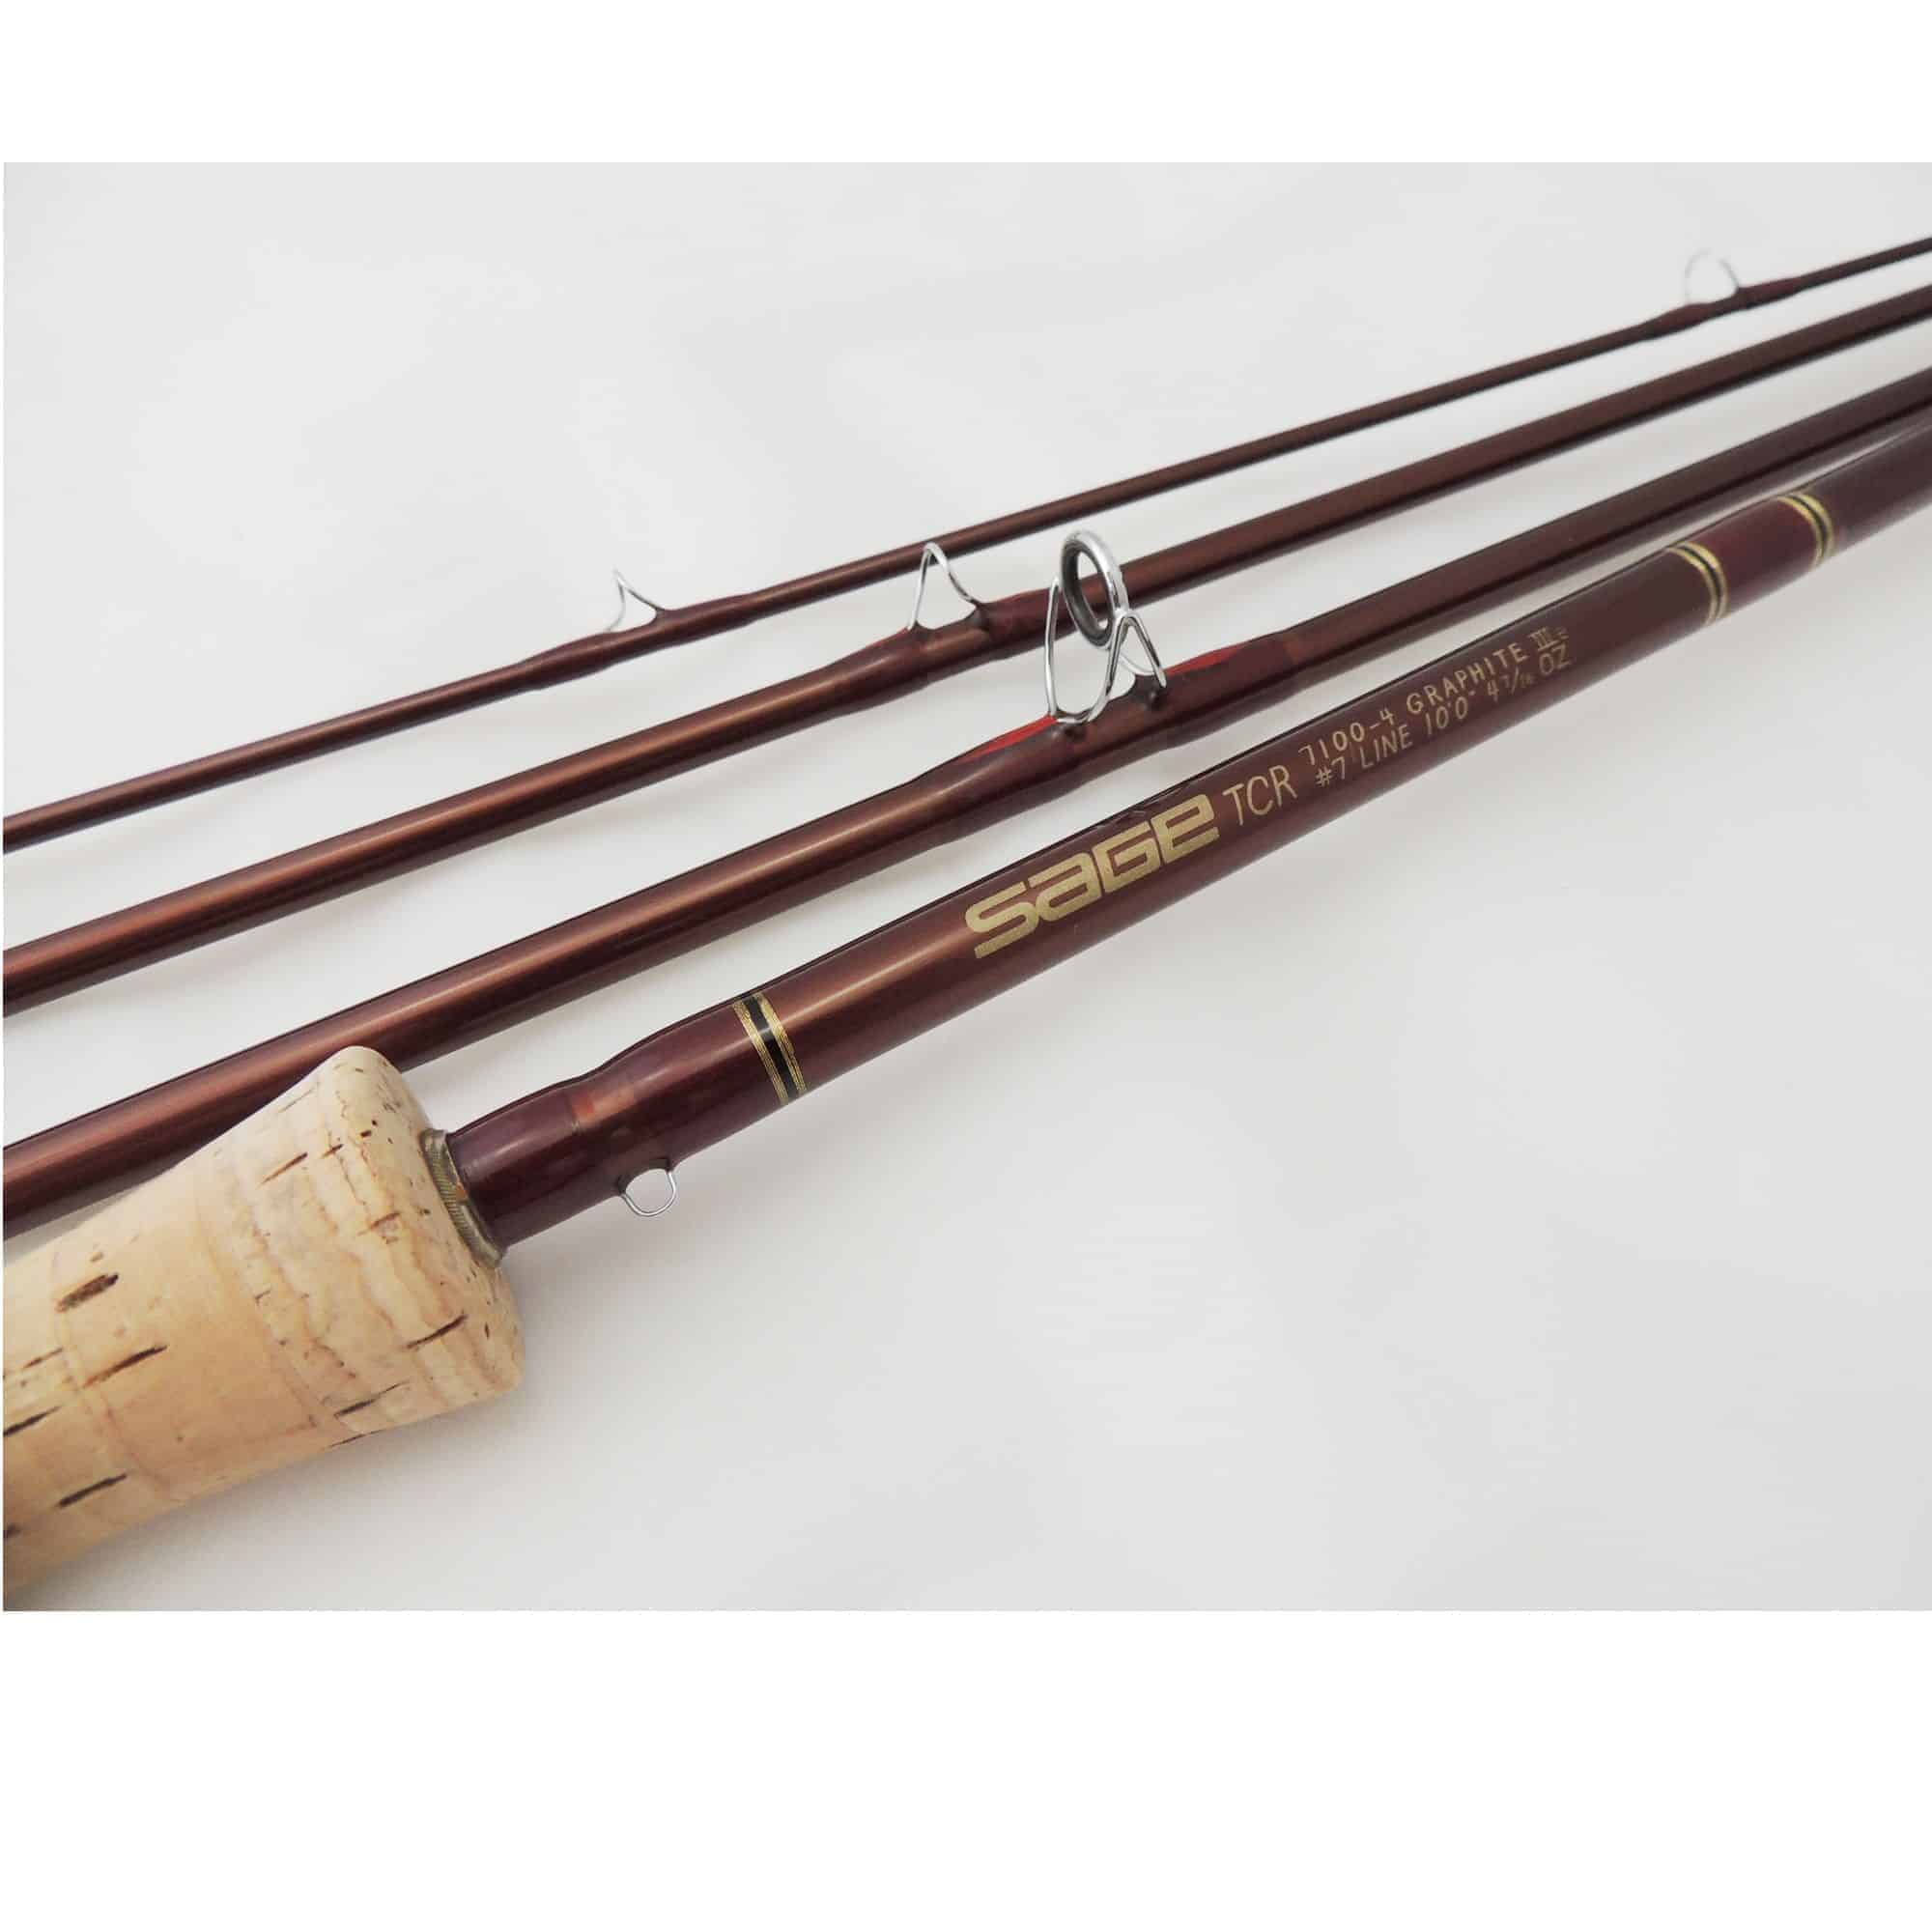 Single handed Fly rods